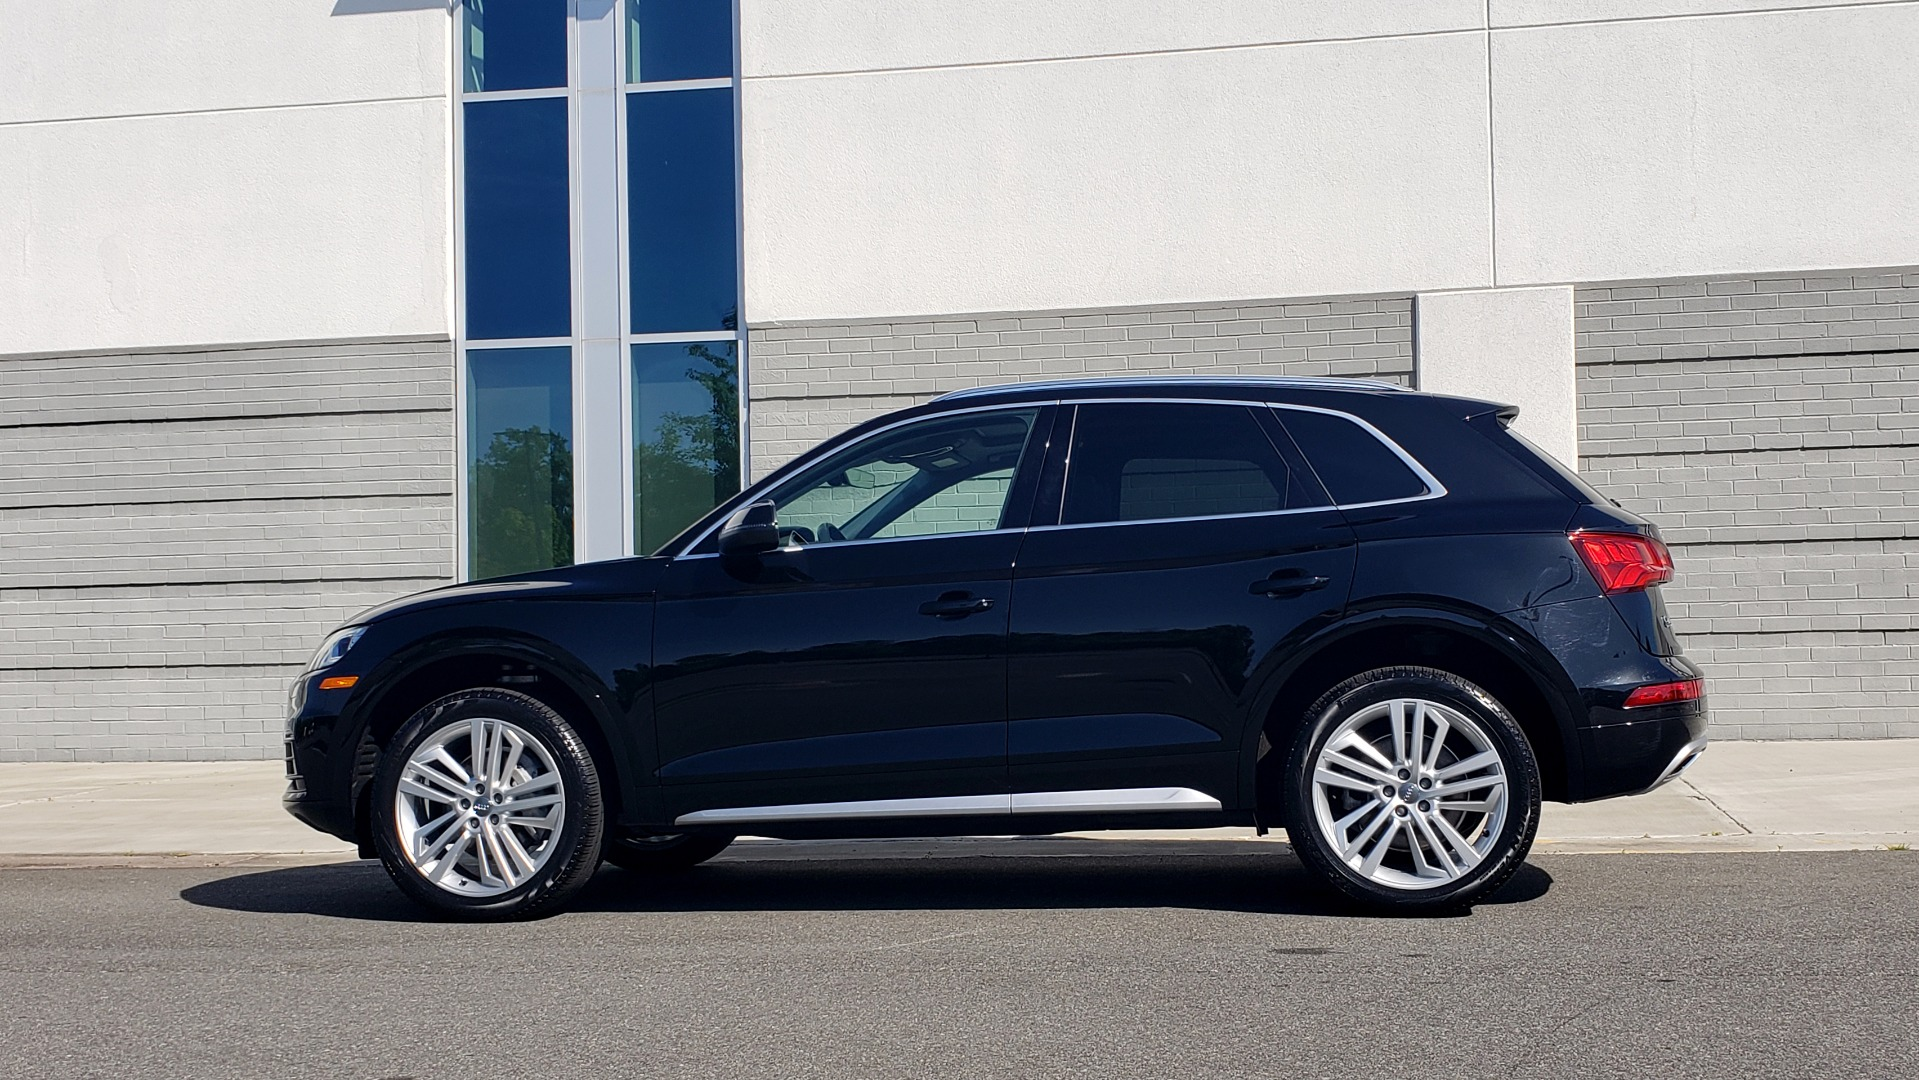 Used 2018 Audi Q5 PREMIUM PLUS / NAV / B&O SND / CLD WTHR / SUNROOF / REARVIEW for sale Sold at Formula Imports in Charlotte NC 28227 6